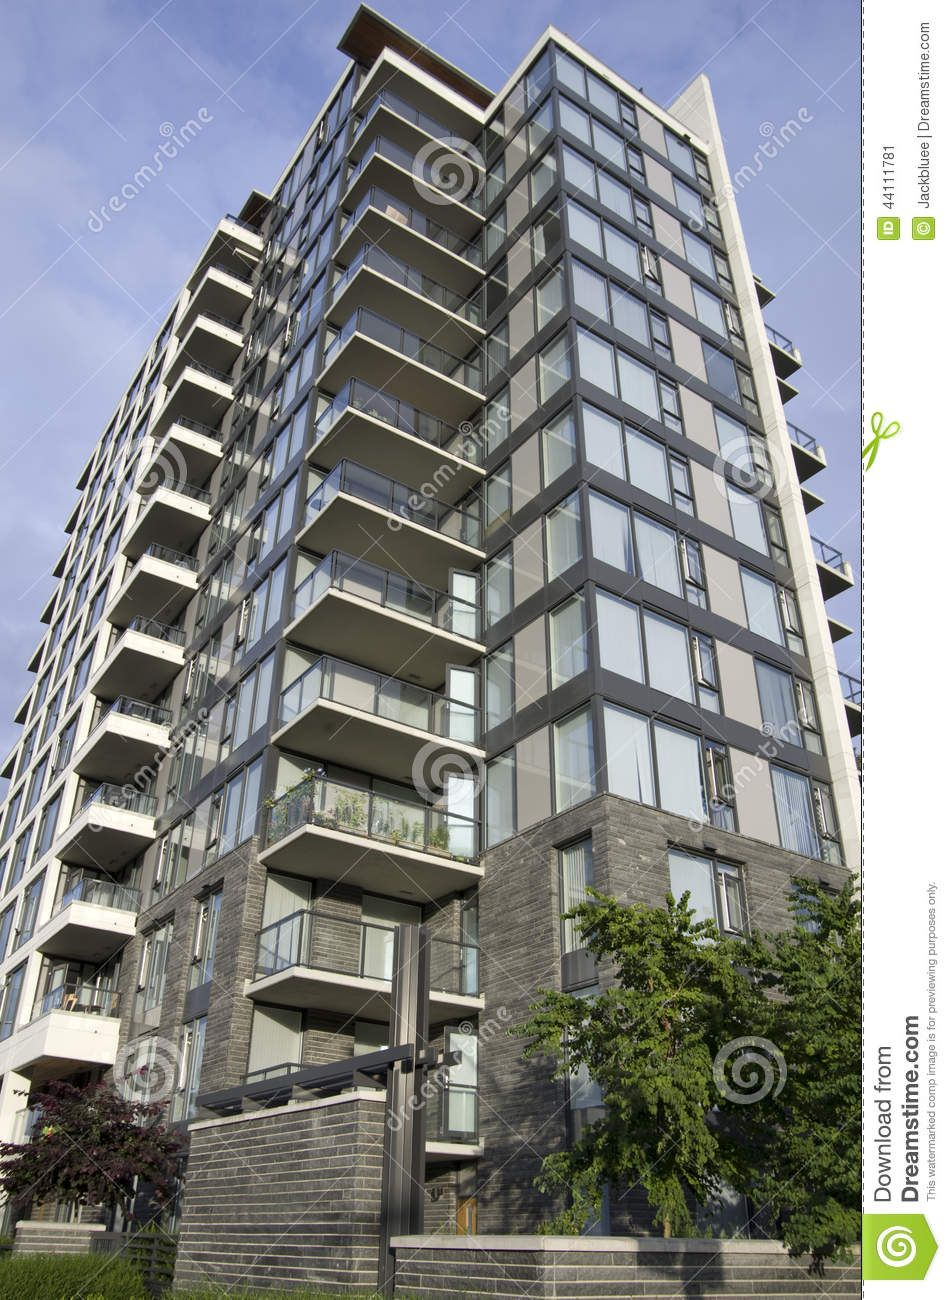 modern-apartment-building-nice-new-design-vancouver-canada-44111781.jpg (951×1300)